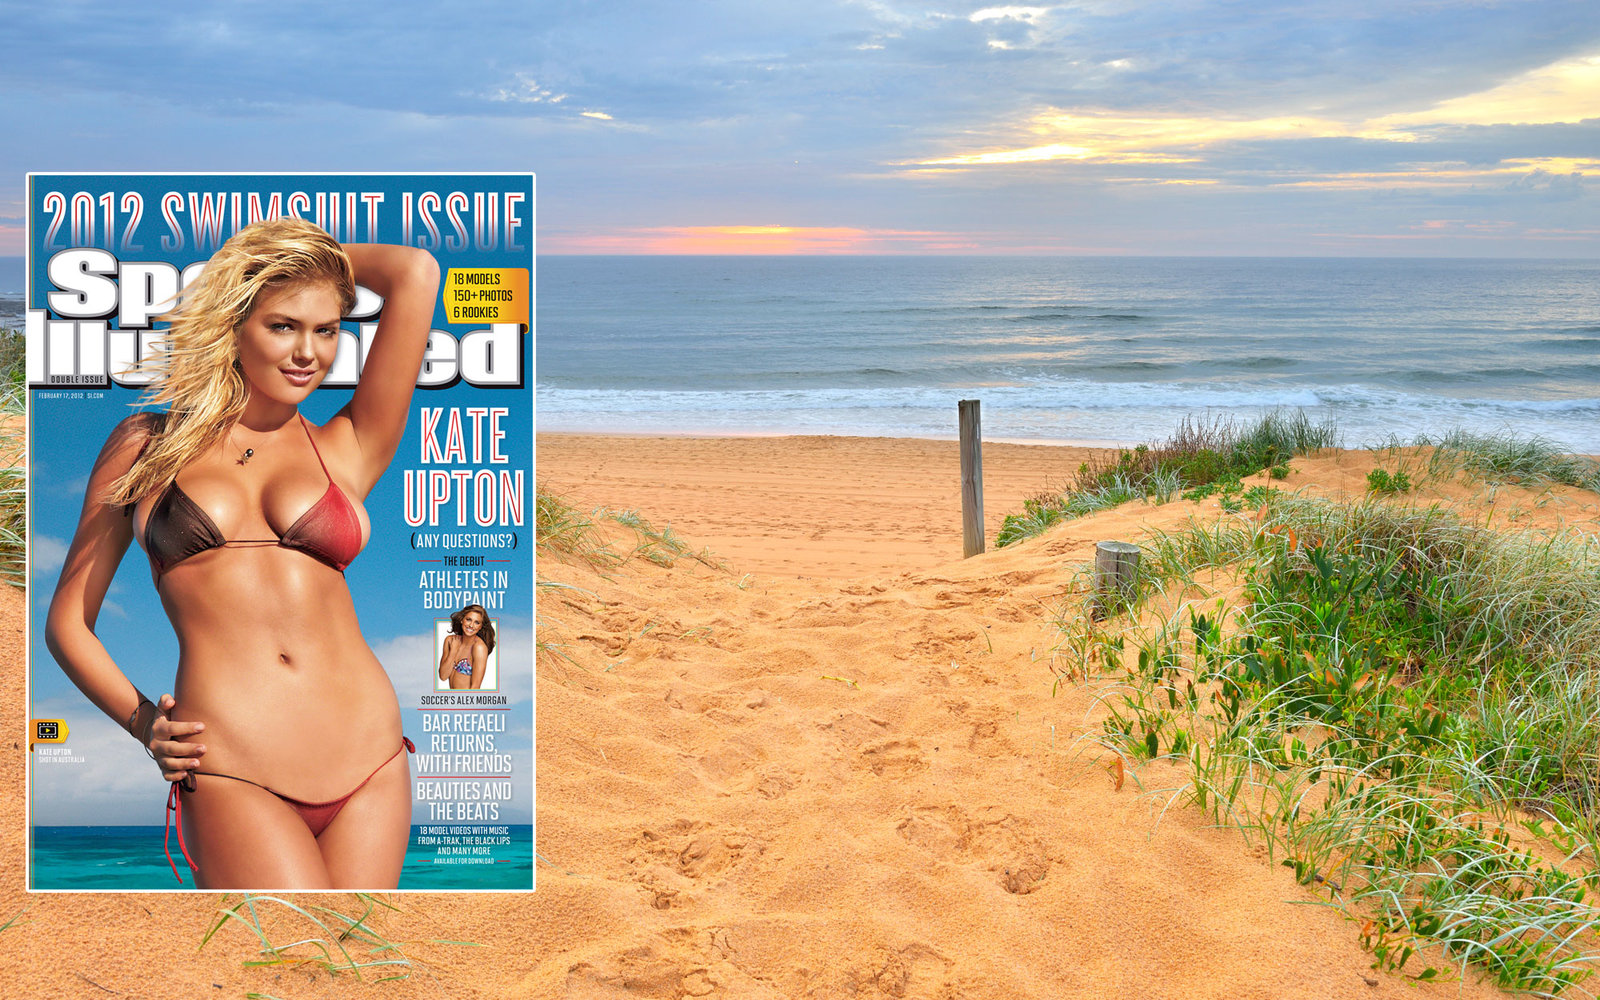 Sports Illustrated Swimsuit Issue 2012 North Narrabeen Beach New South Wales